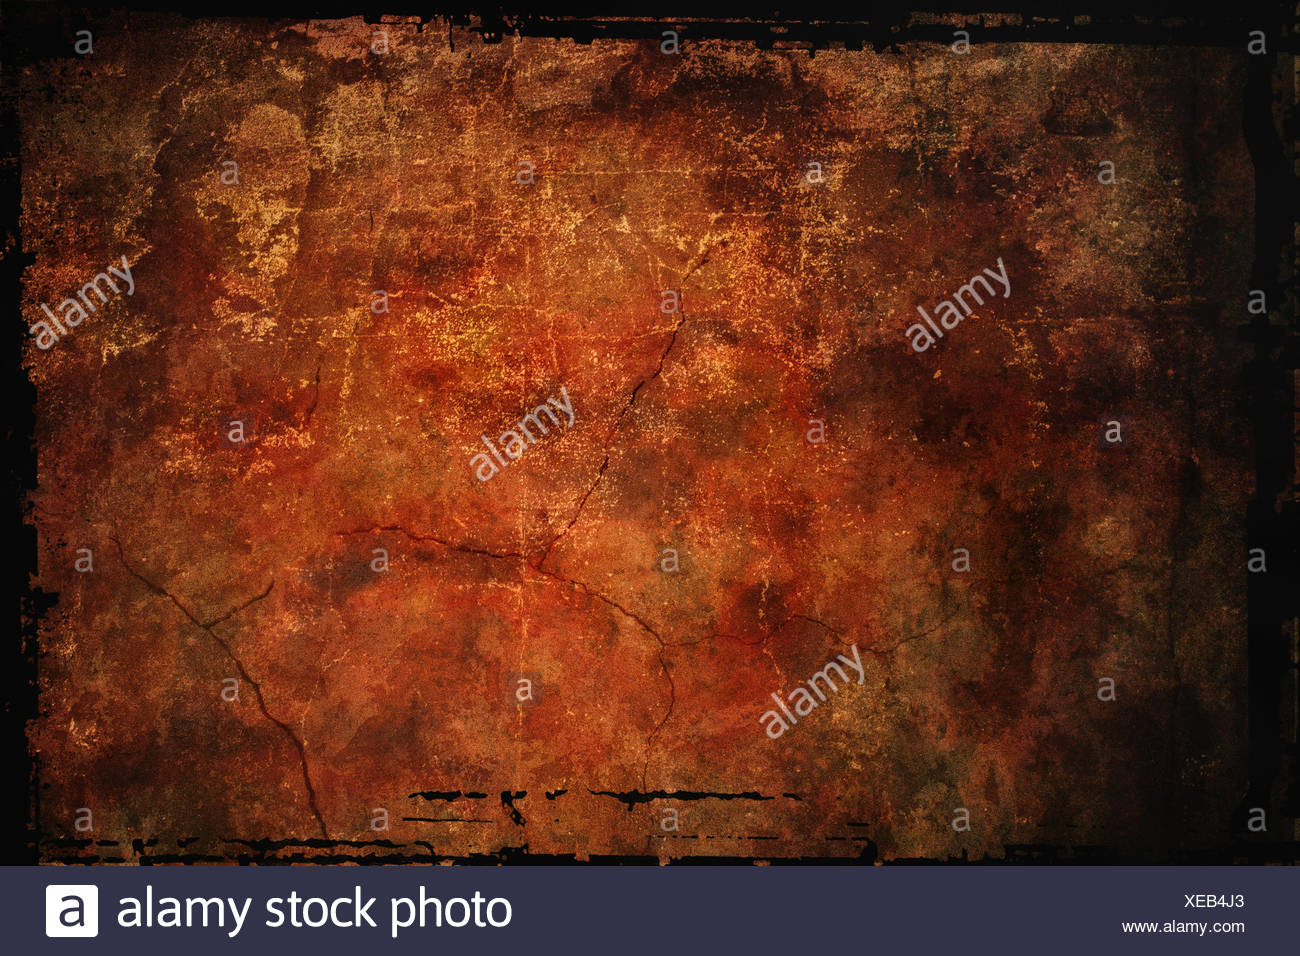 reddish brown stylized background with grange texture - Stock Image